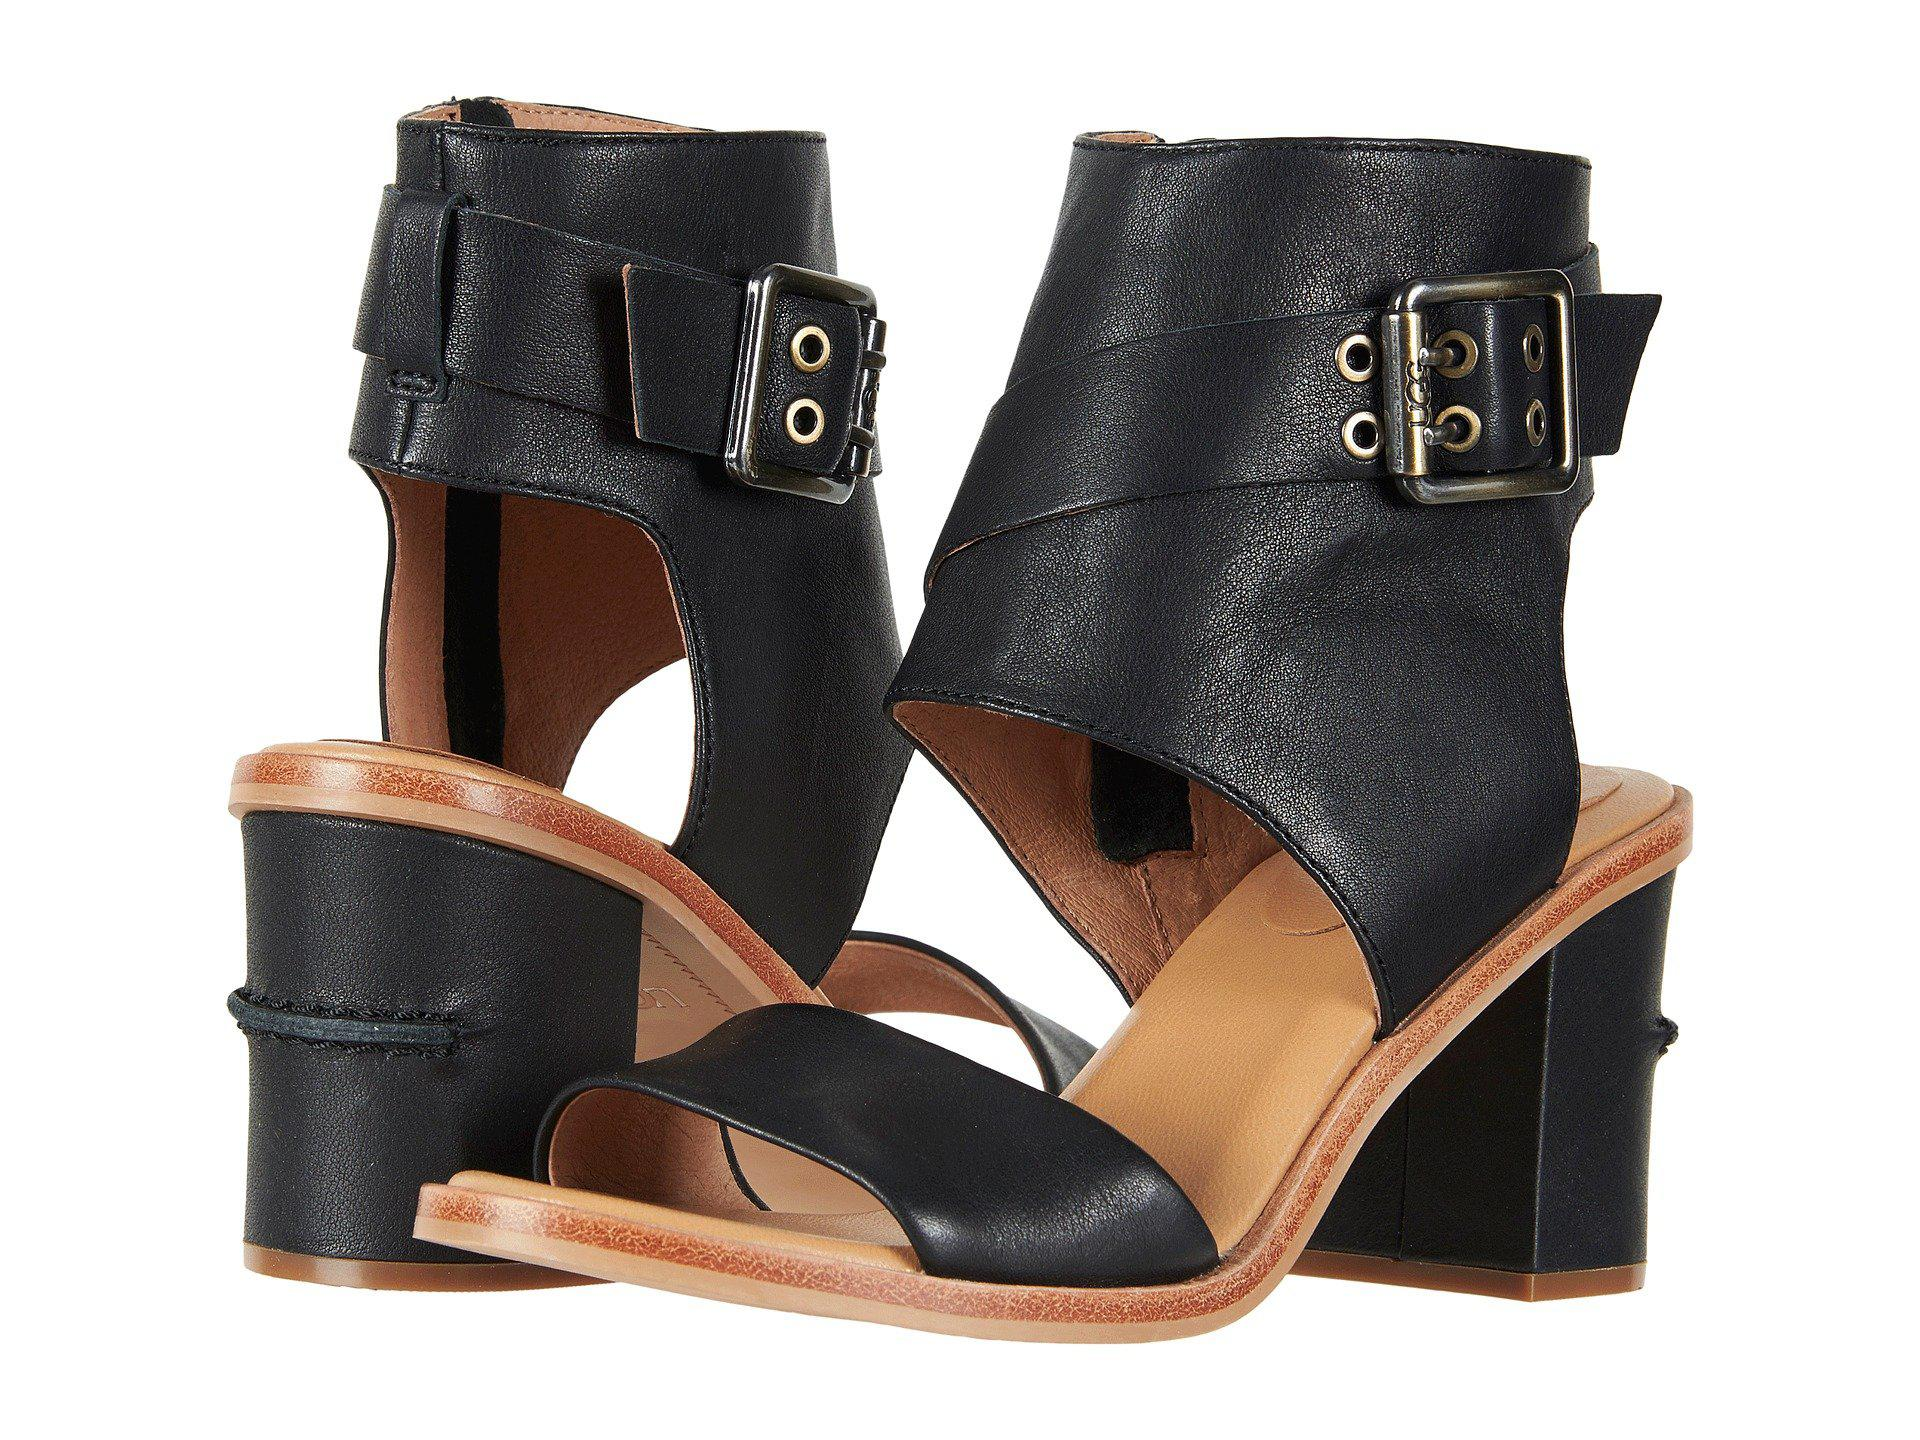 5c80cc50bee5a Lyst - UGG Claudette in Black - Save 26%